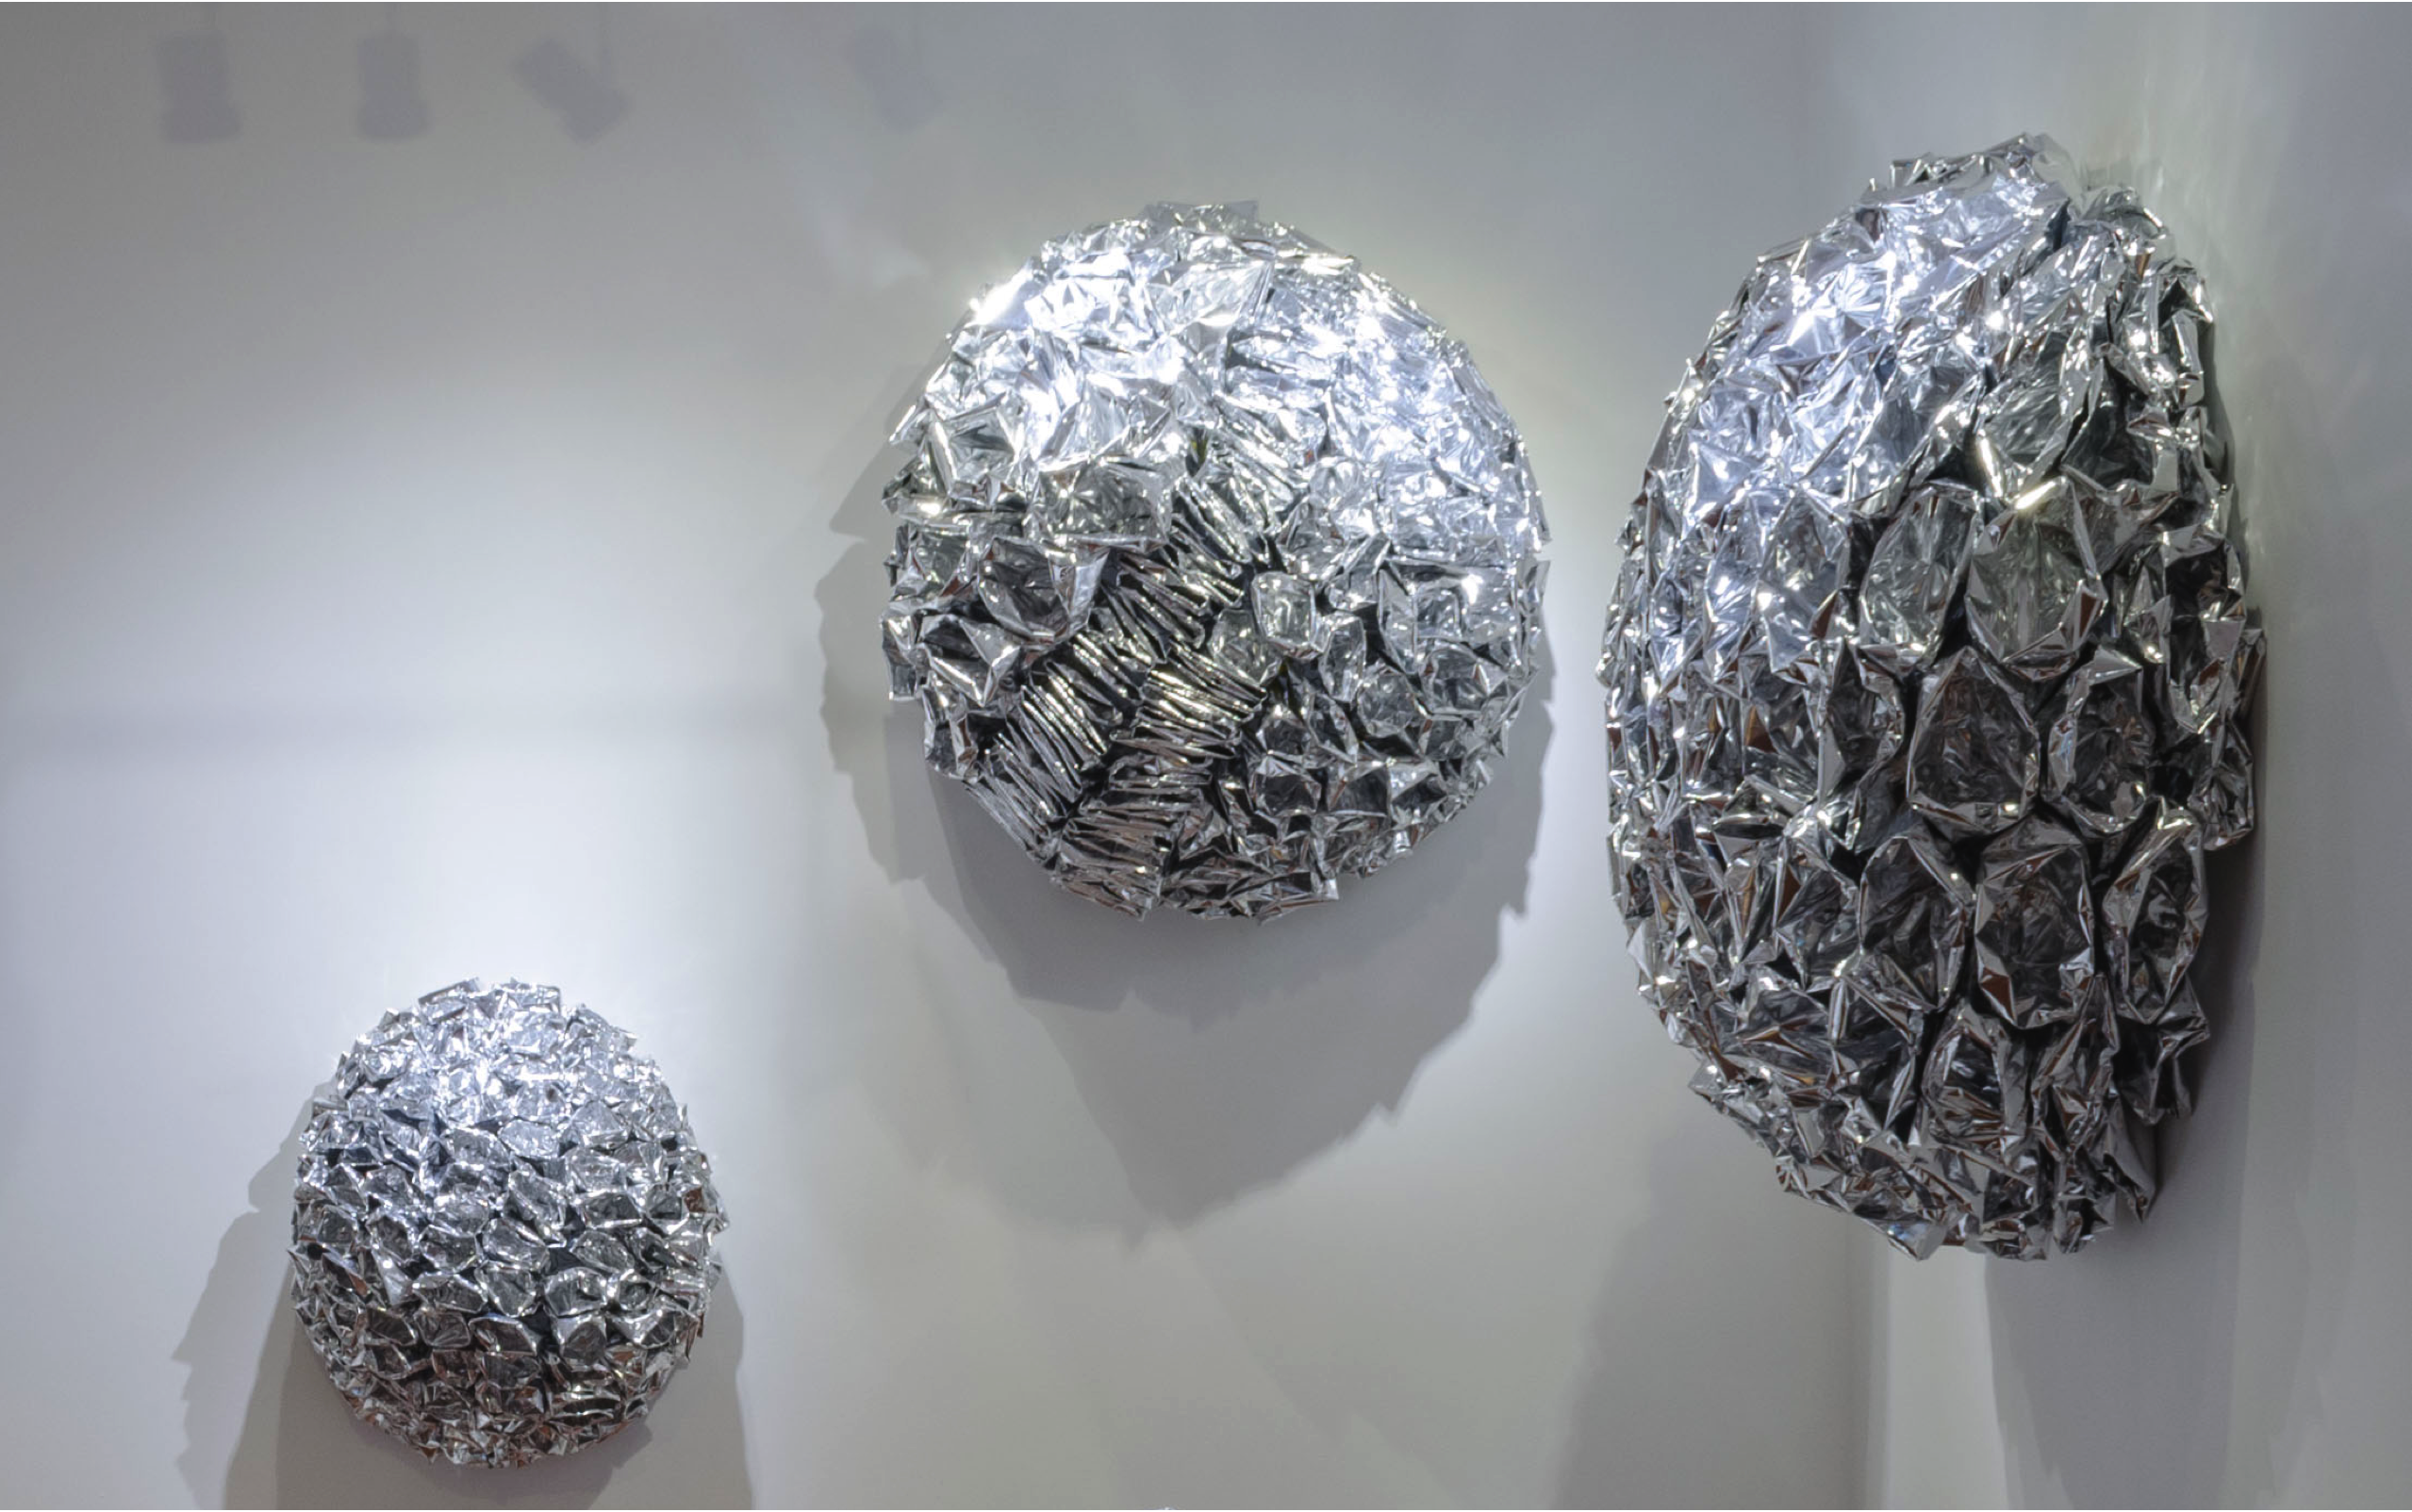 David Jang's Novelty piece made of chicken wire covered in inverted chip bags. Set of 3 in variable sizes.  navigate down for further details